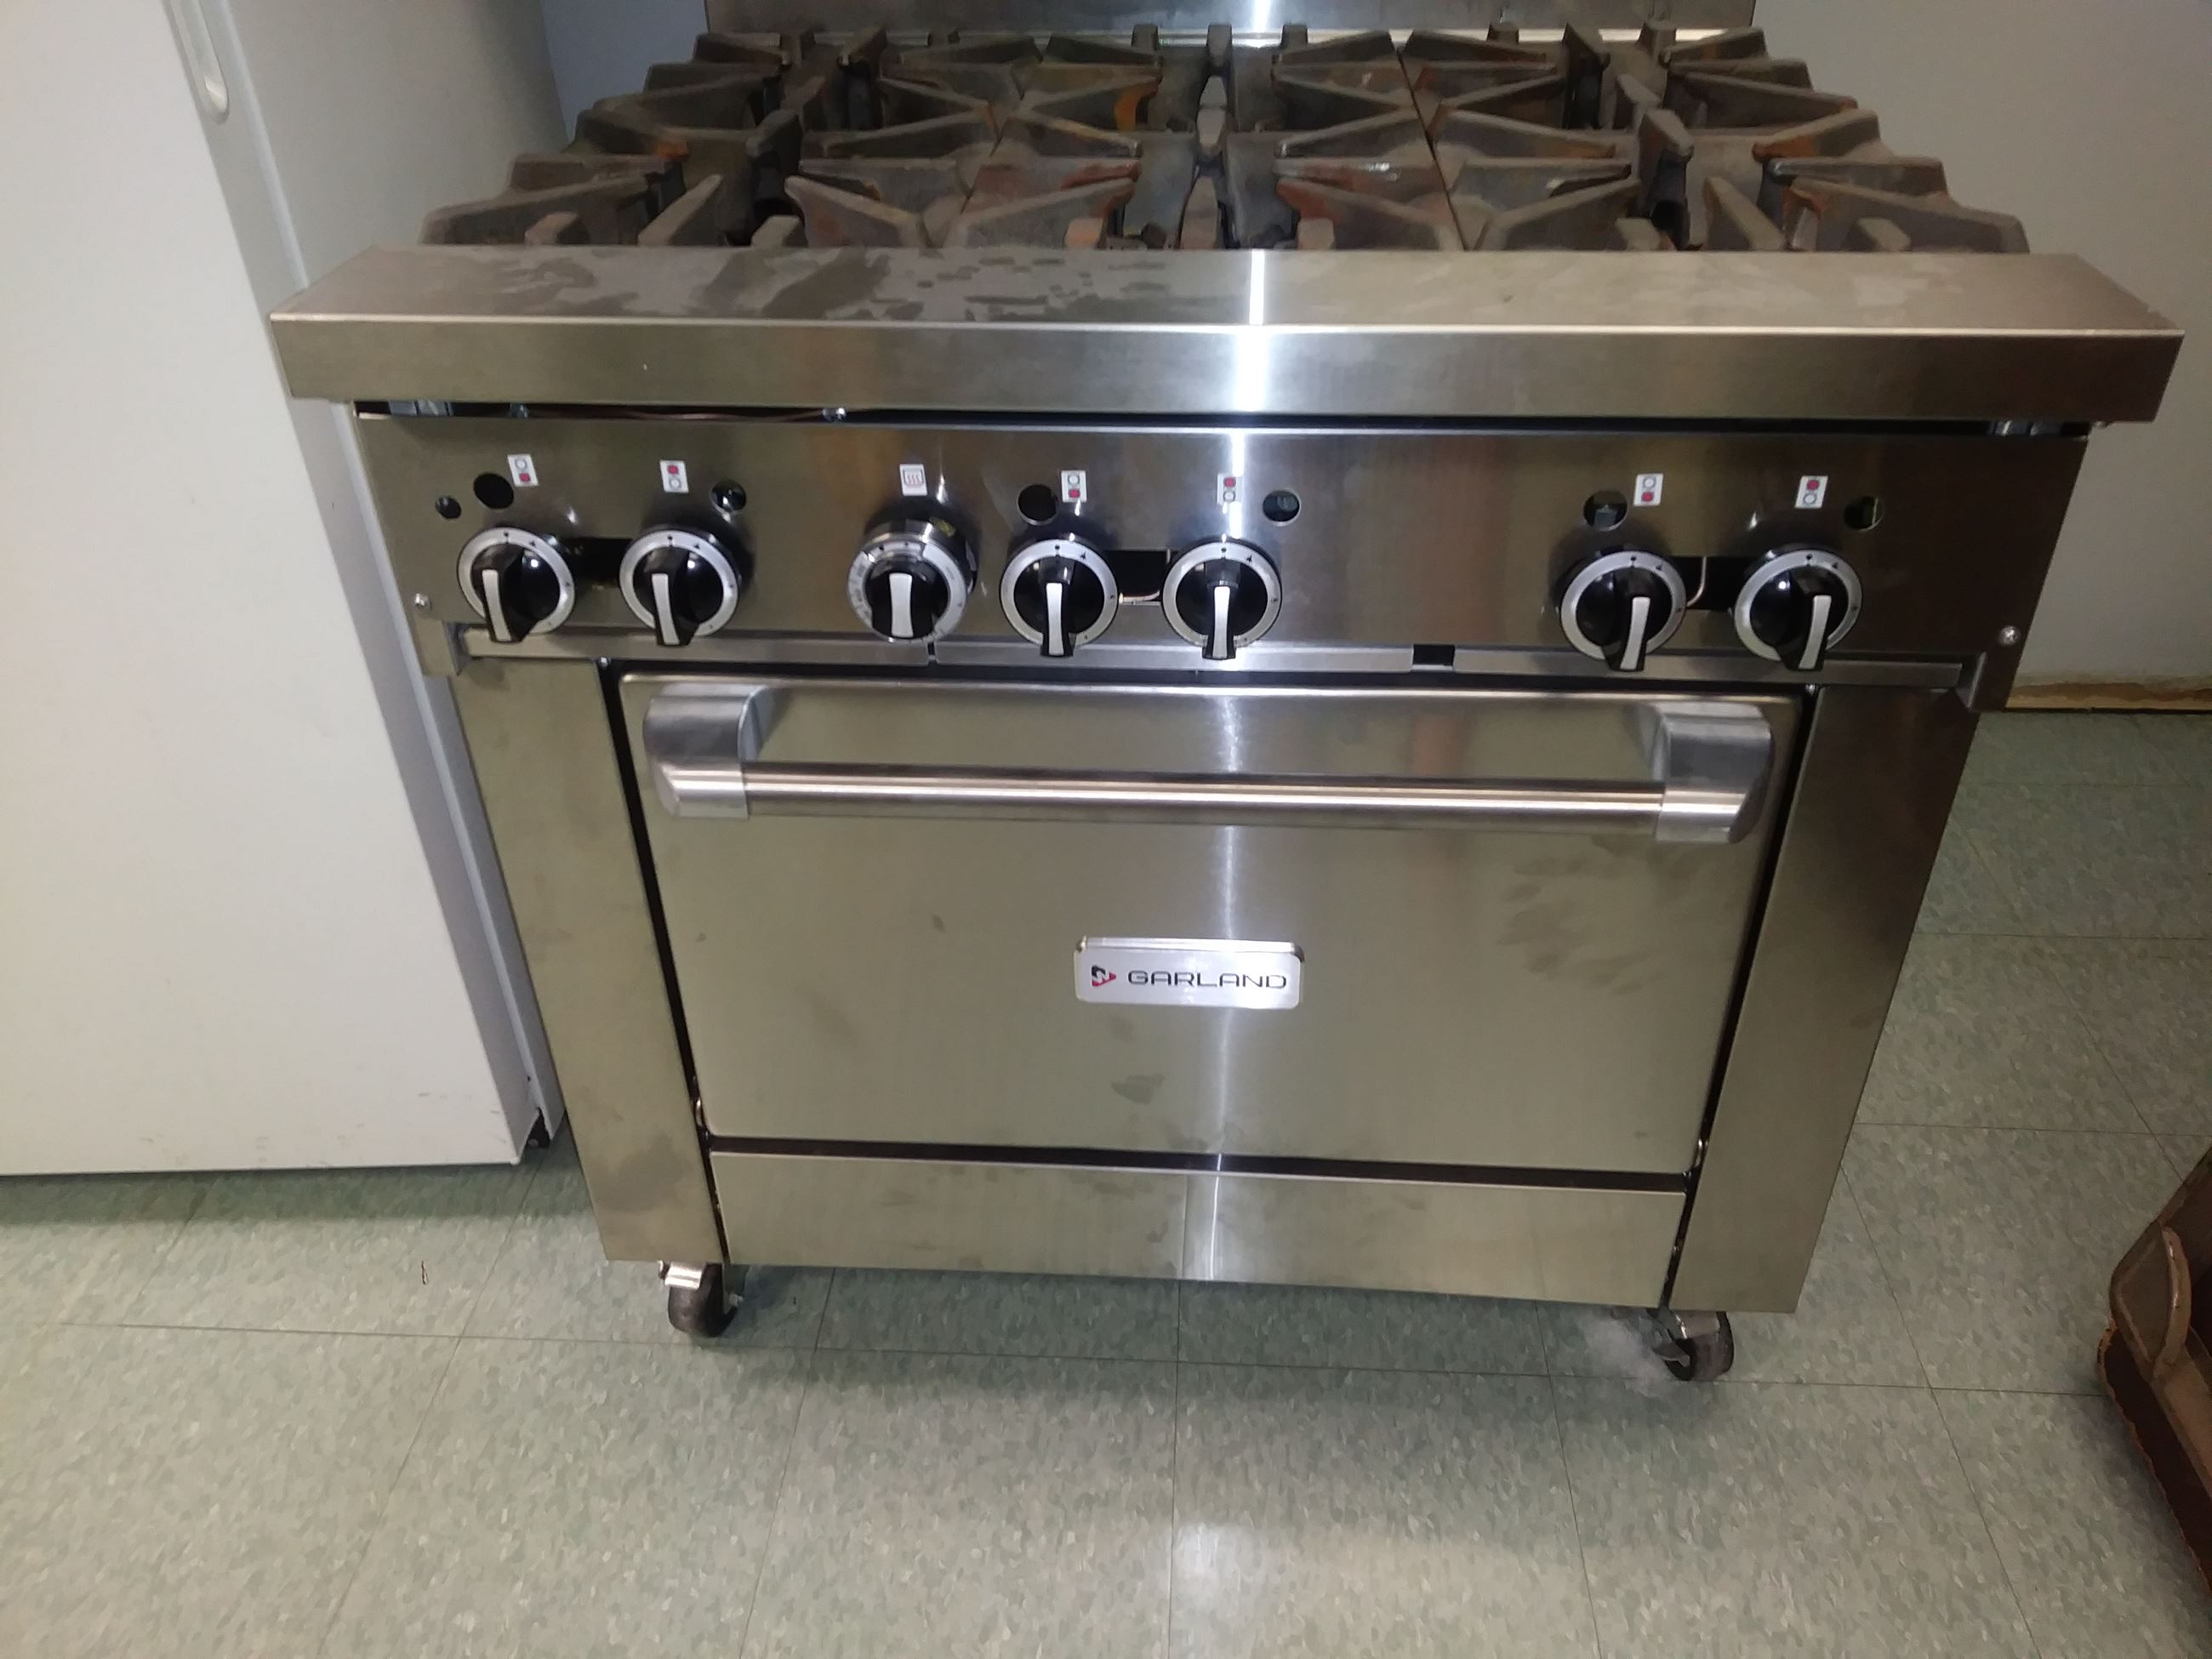 Six Range Stove - Incubator Kitchen